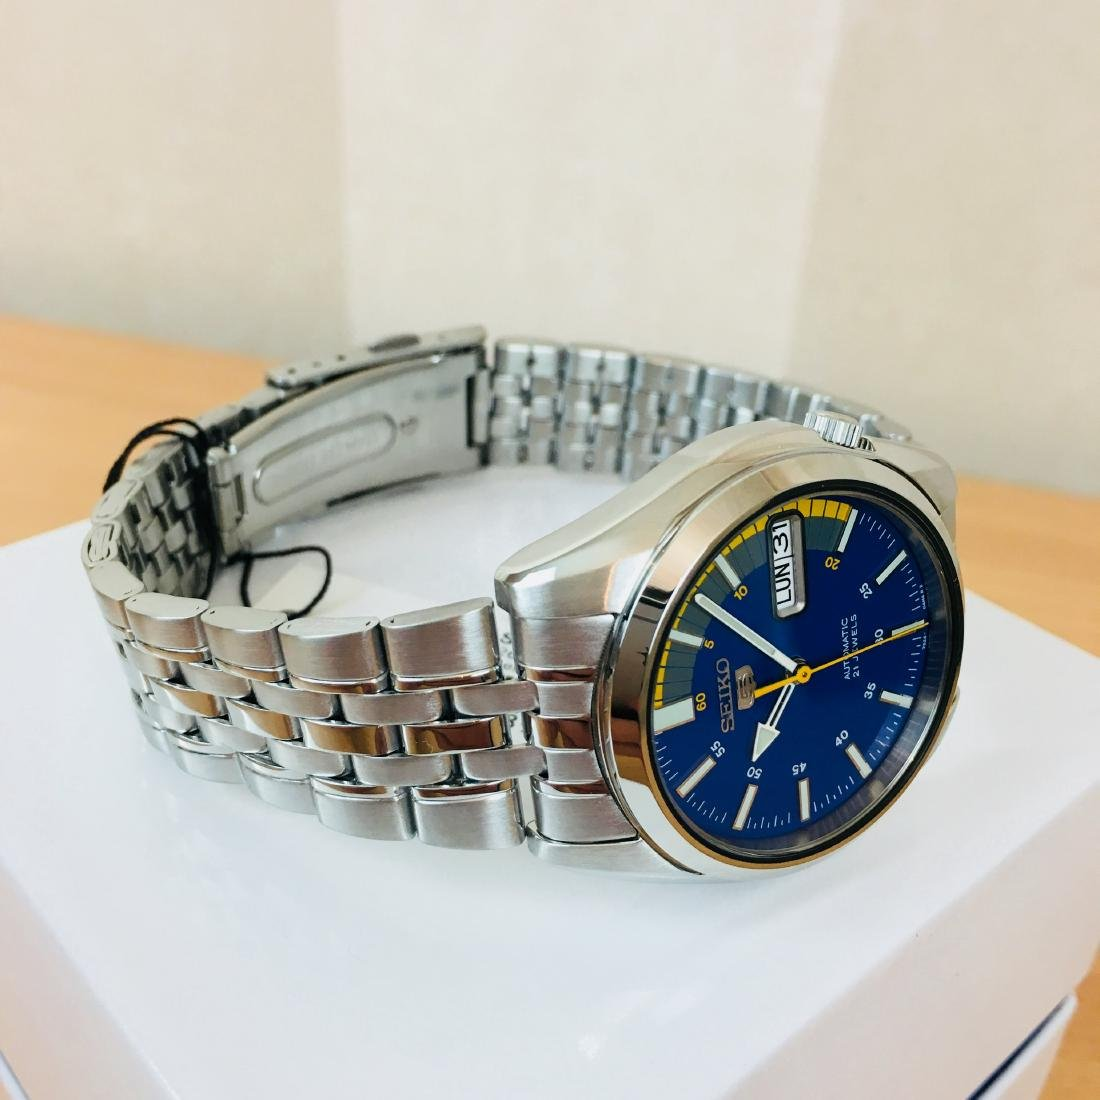 SEIKO 5 Men's Automatic Watch Brand New with Box - 6